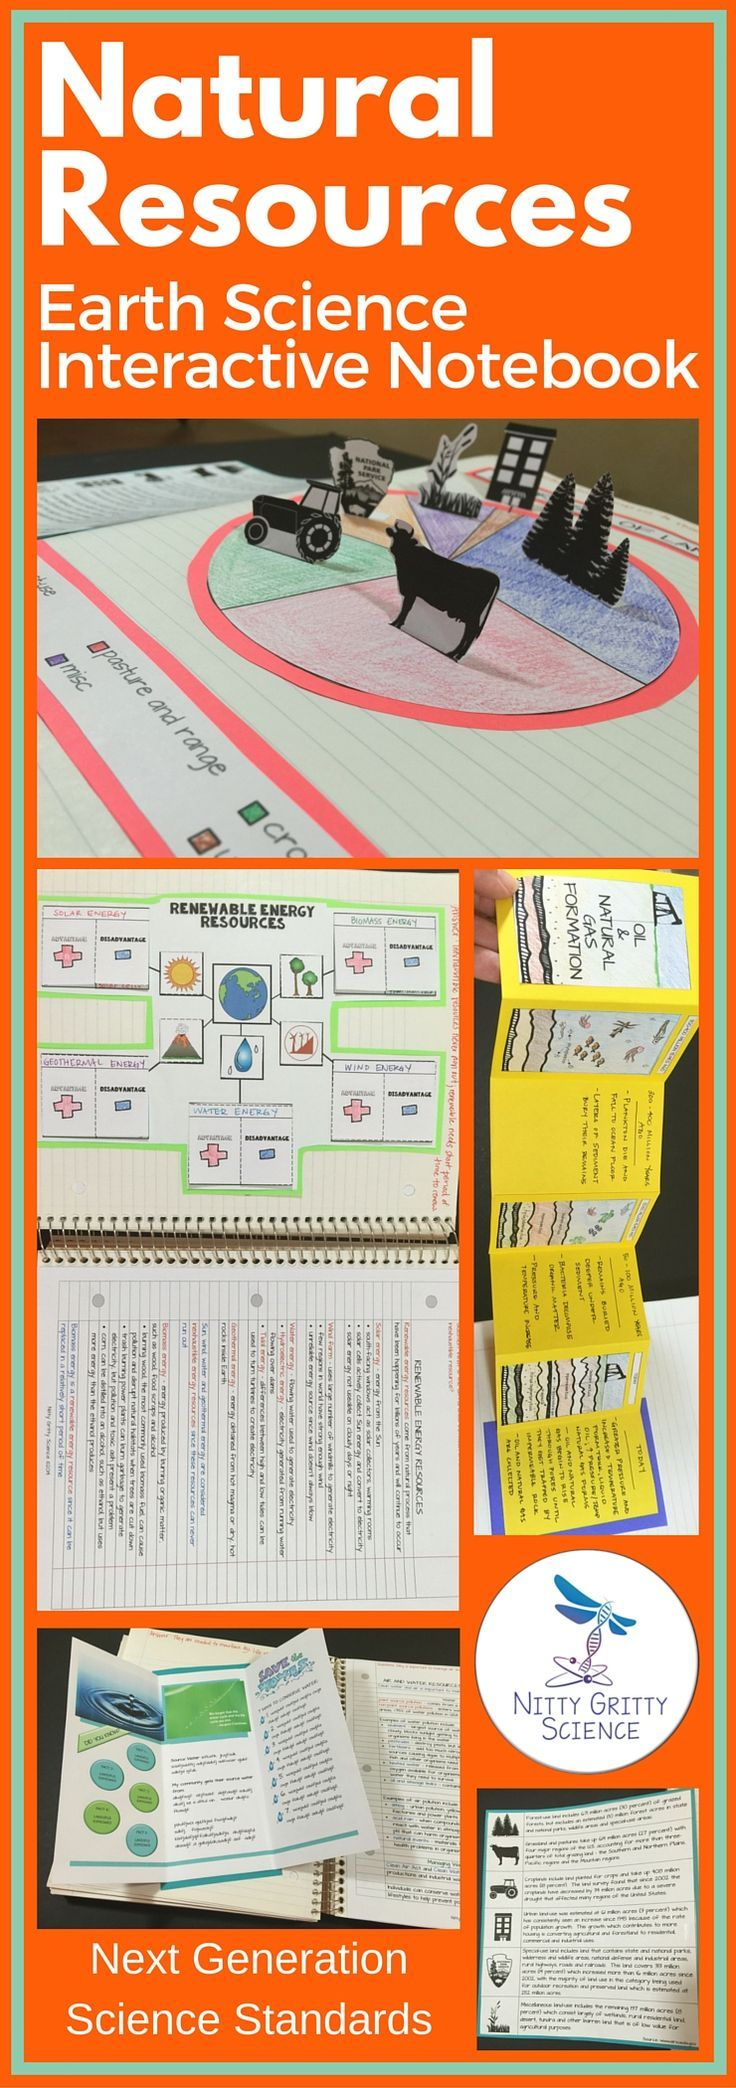 The Earth Science Interactive Notebook: Natural Resources chapter showcase student's ability to: •Explain the main sources of non-renewable and renewable energy •	Compare the advantages and disadvantages of types of energy •Explain why land is considered a resource •Explain why it is important to manage air and water resources wisely •Describe how individuals can help manage energy, land, water, and air resources wisely.